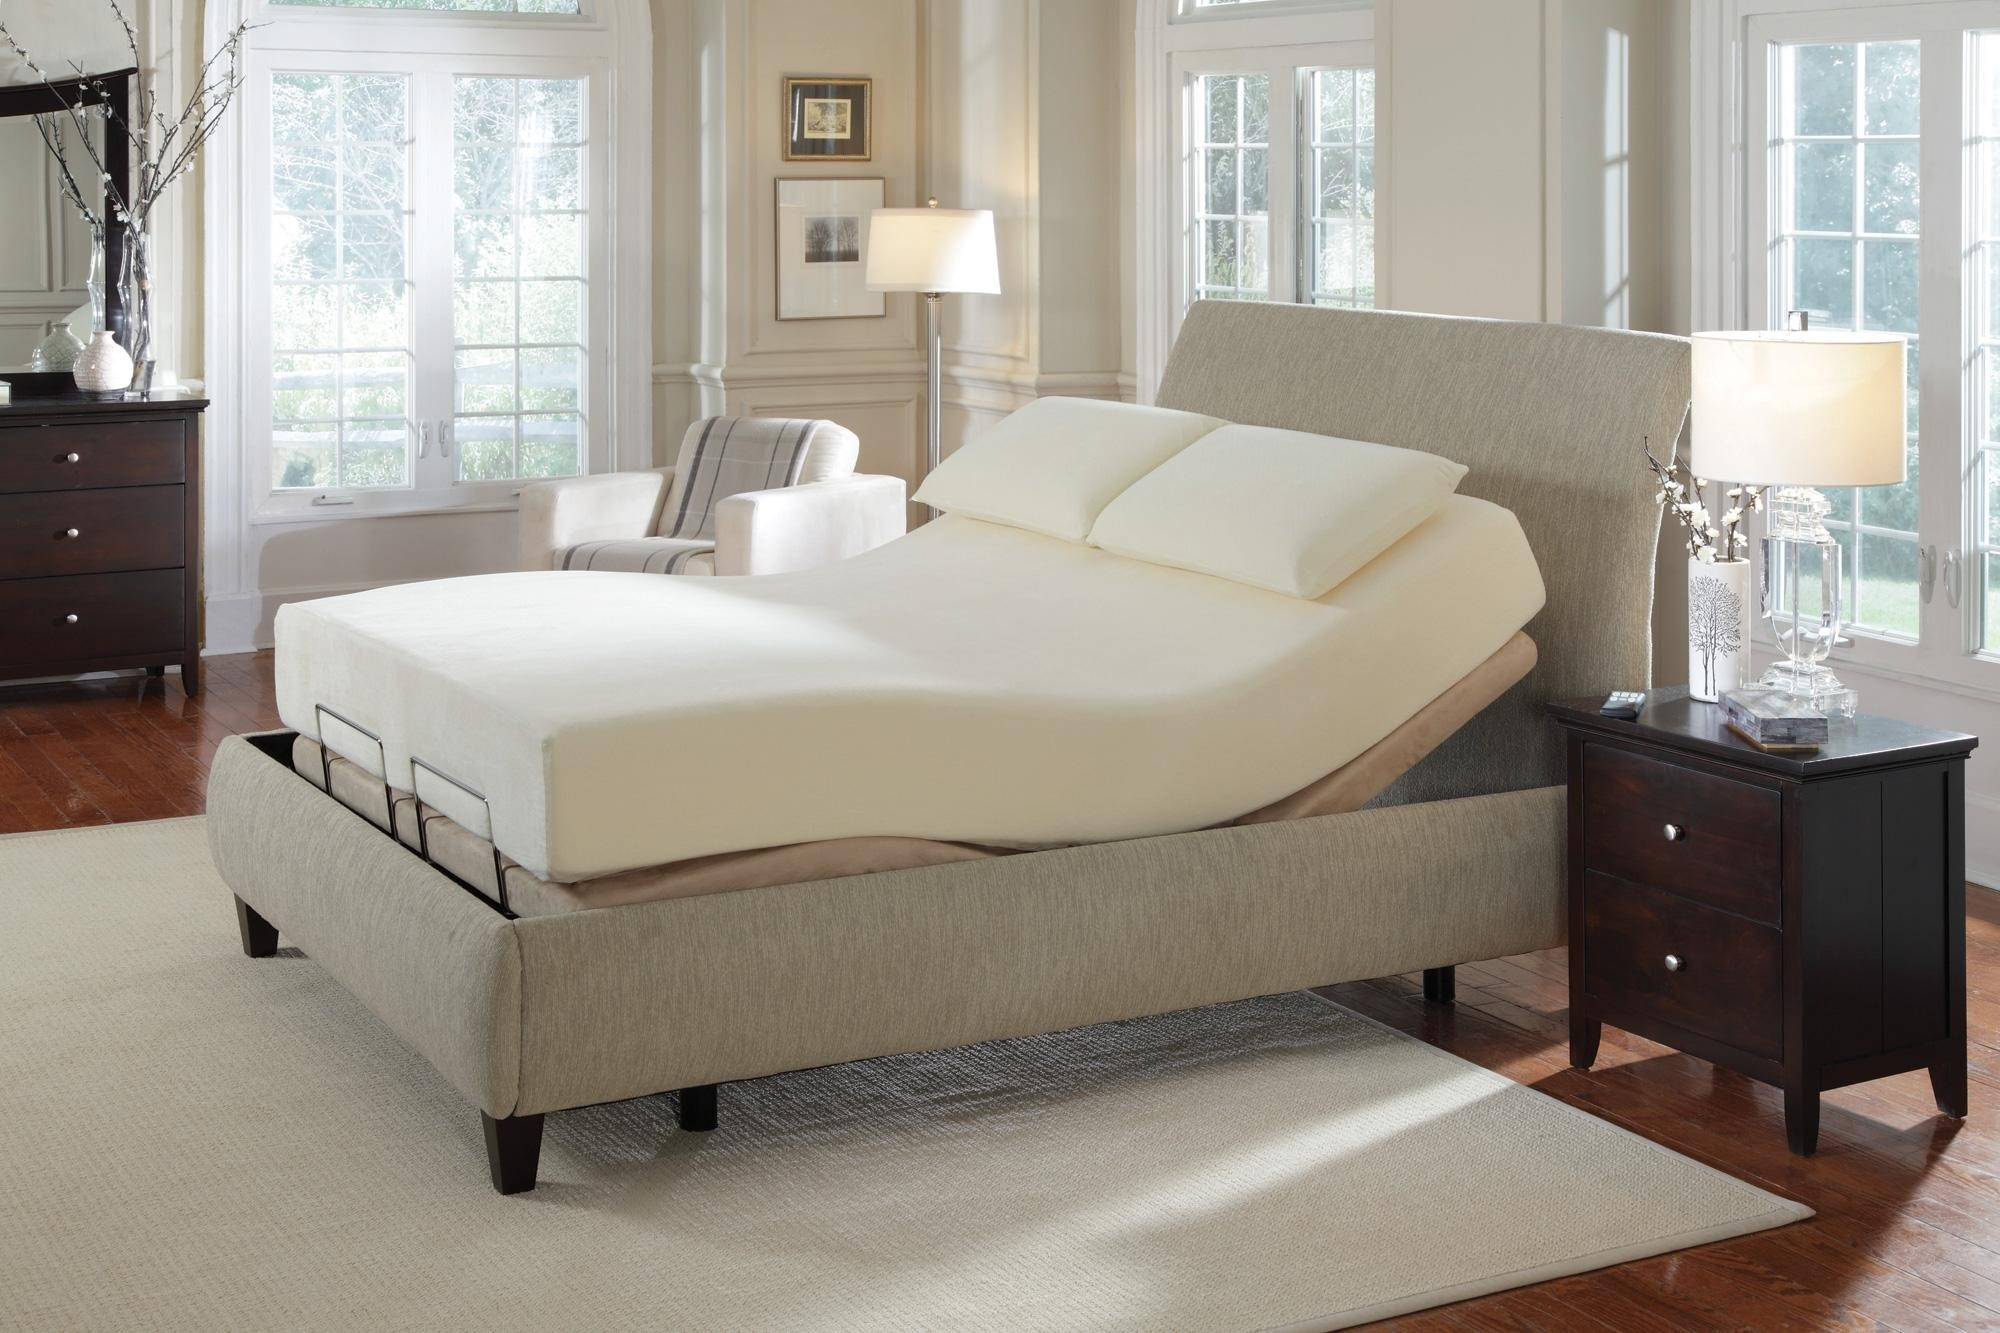 Adjustable Bed Frames For Headboard And Footboard